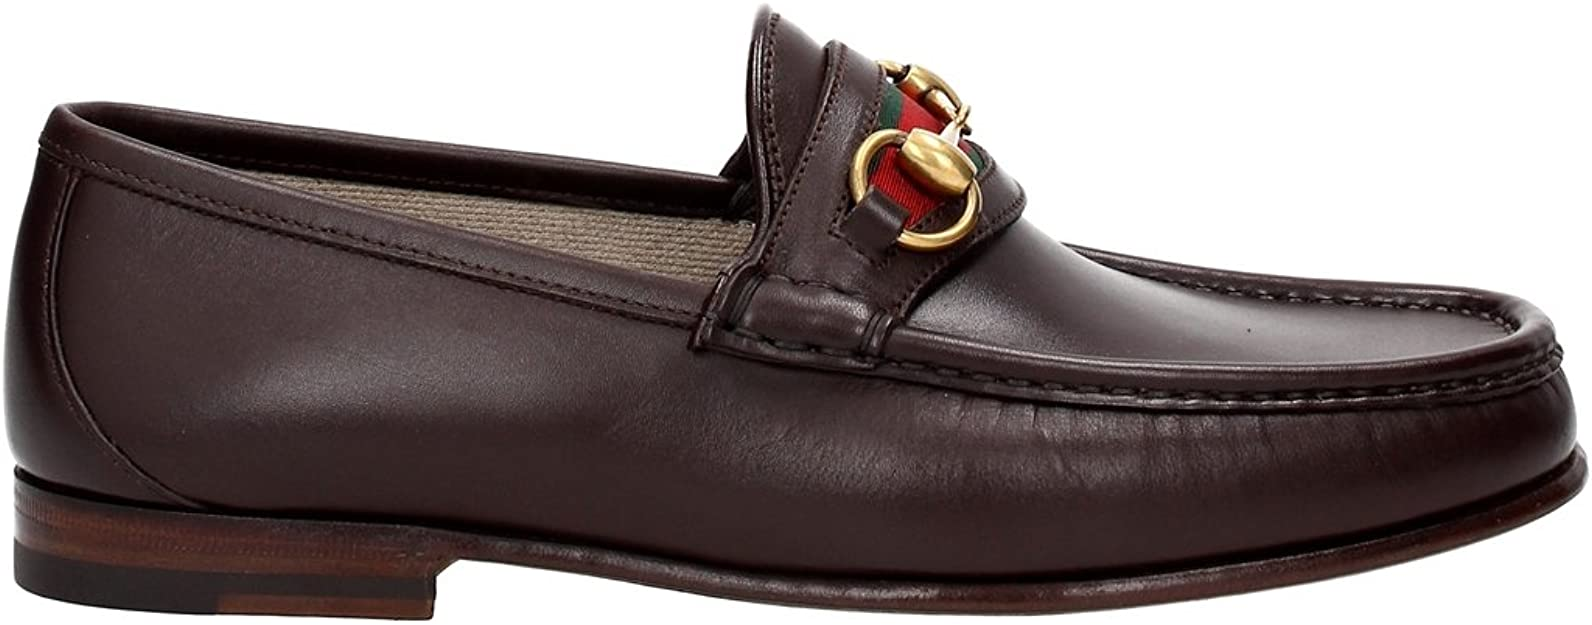 Gucci Loafers Men - (386565ARPA02154